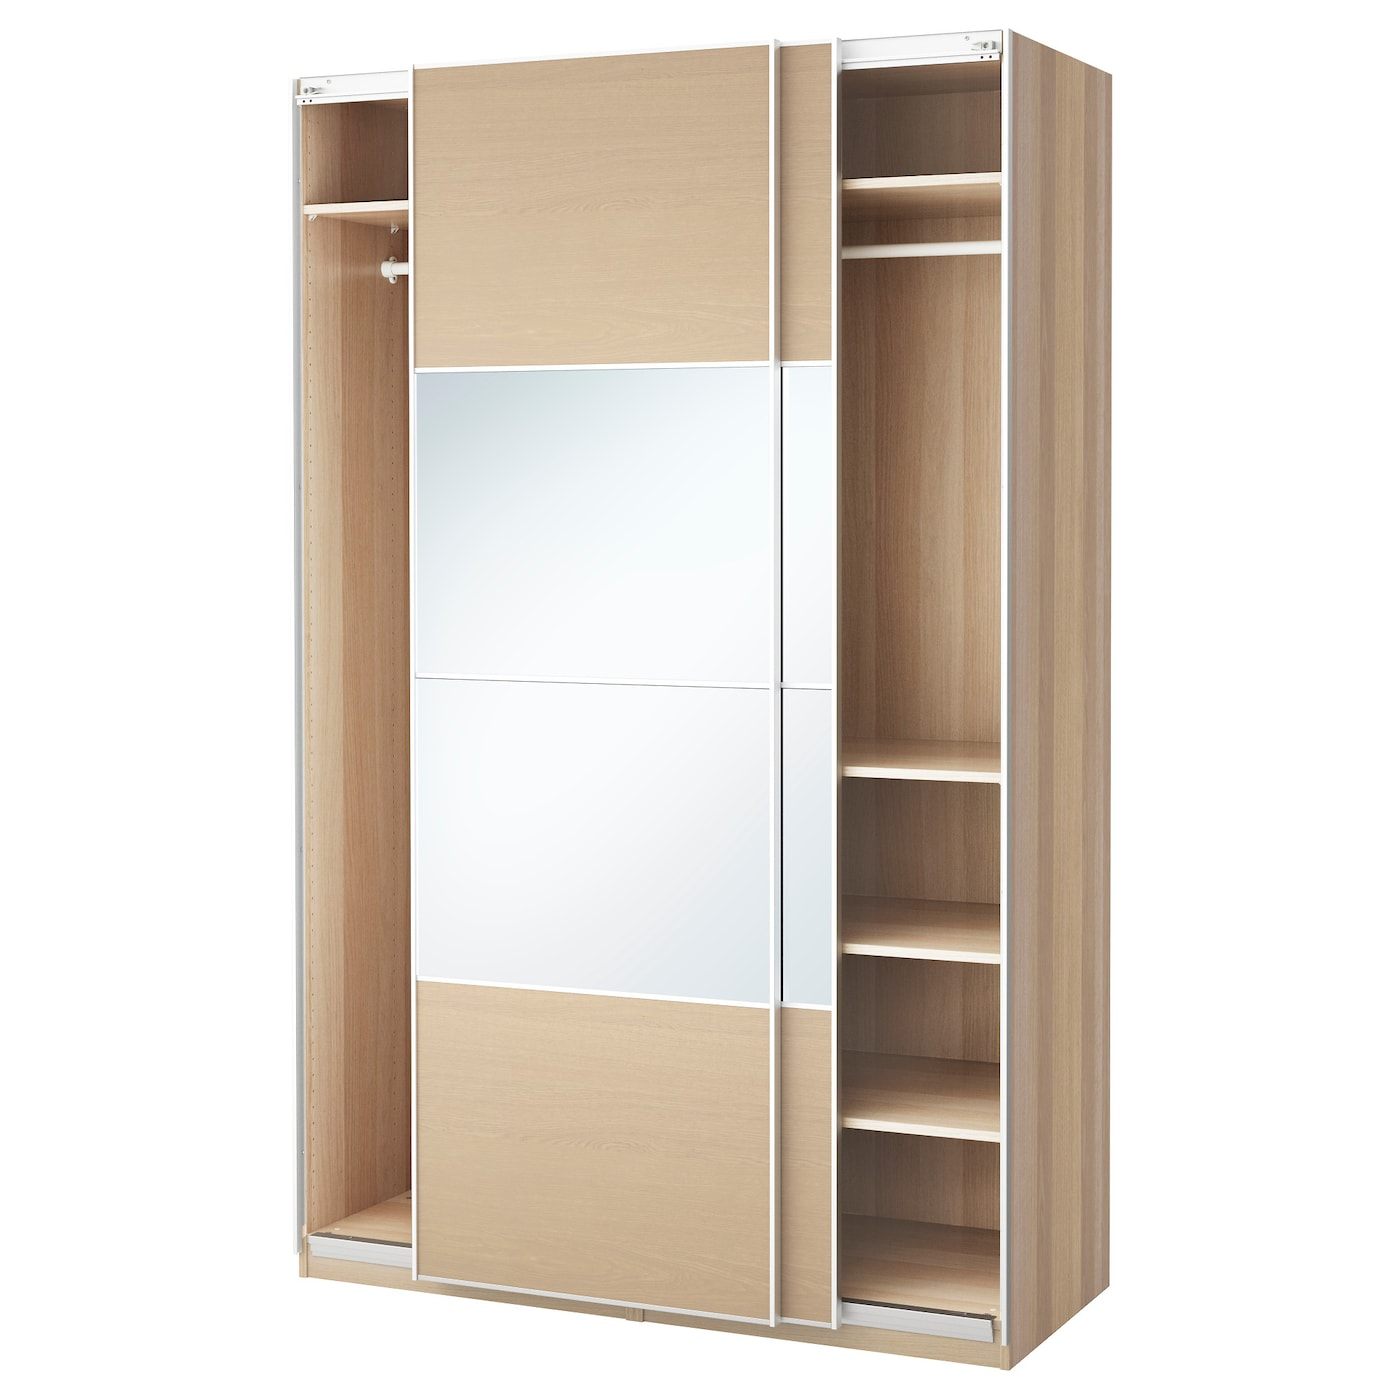 pax wardrobe white stained oak effect auli ilseng